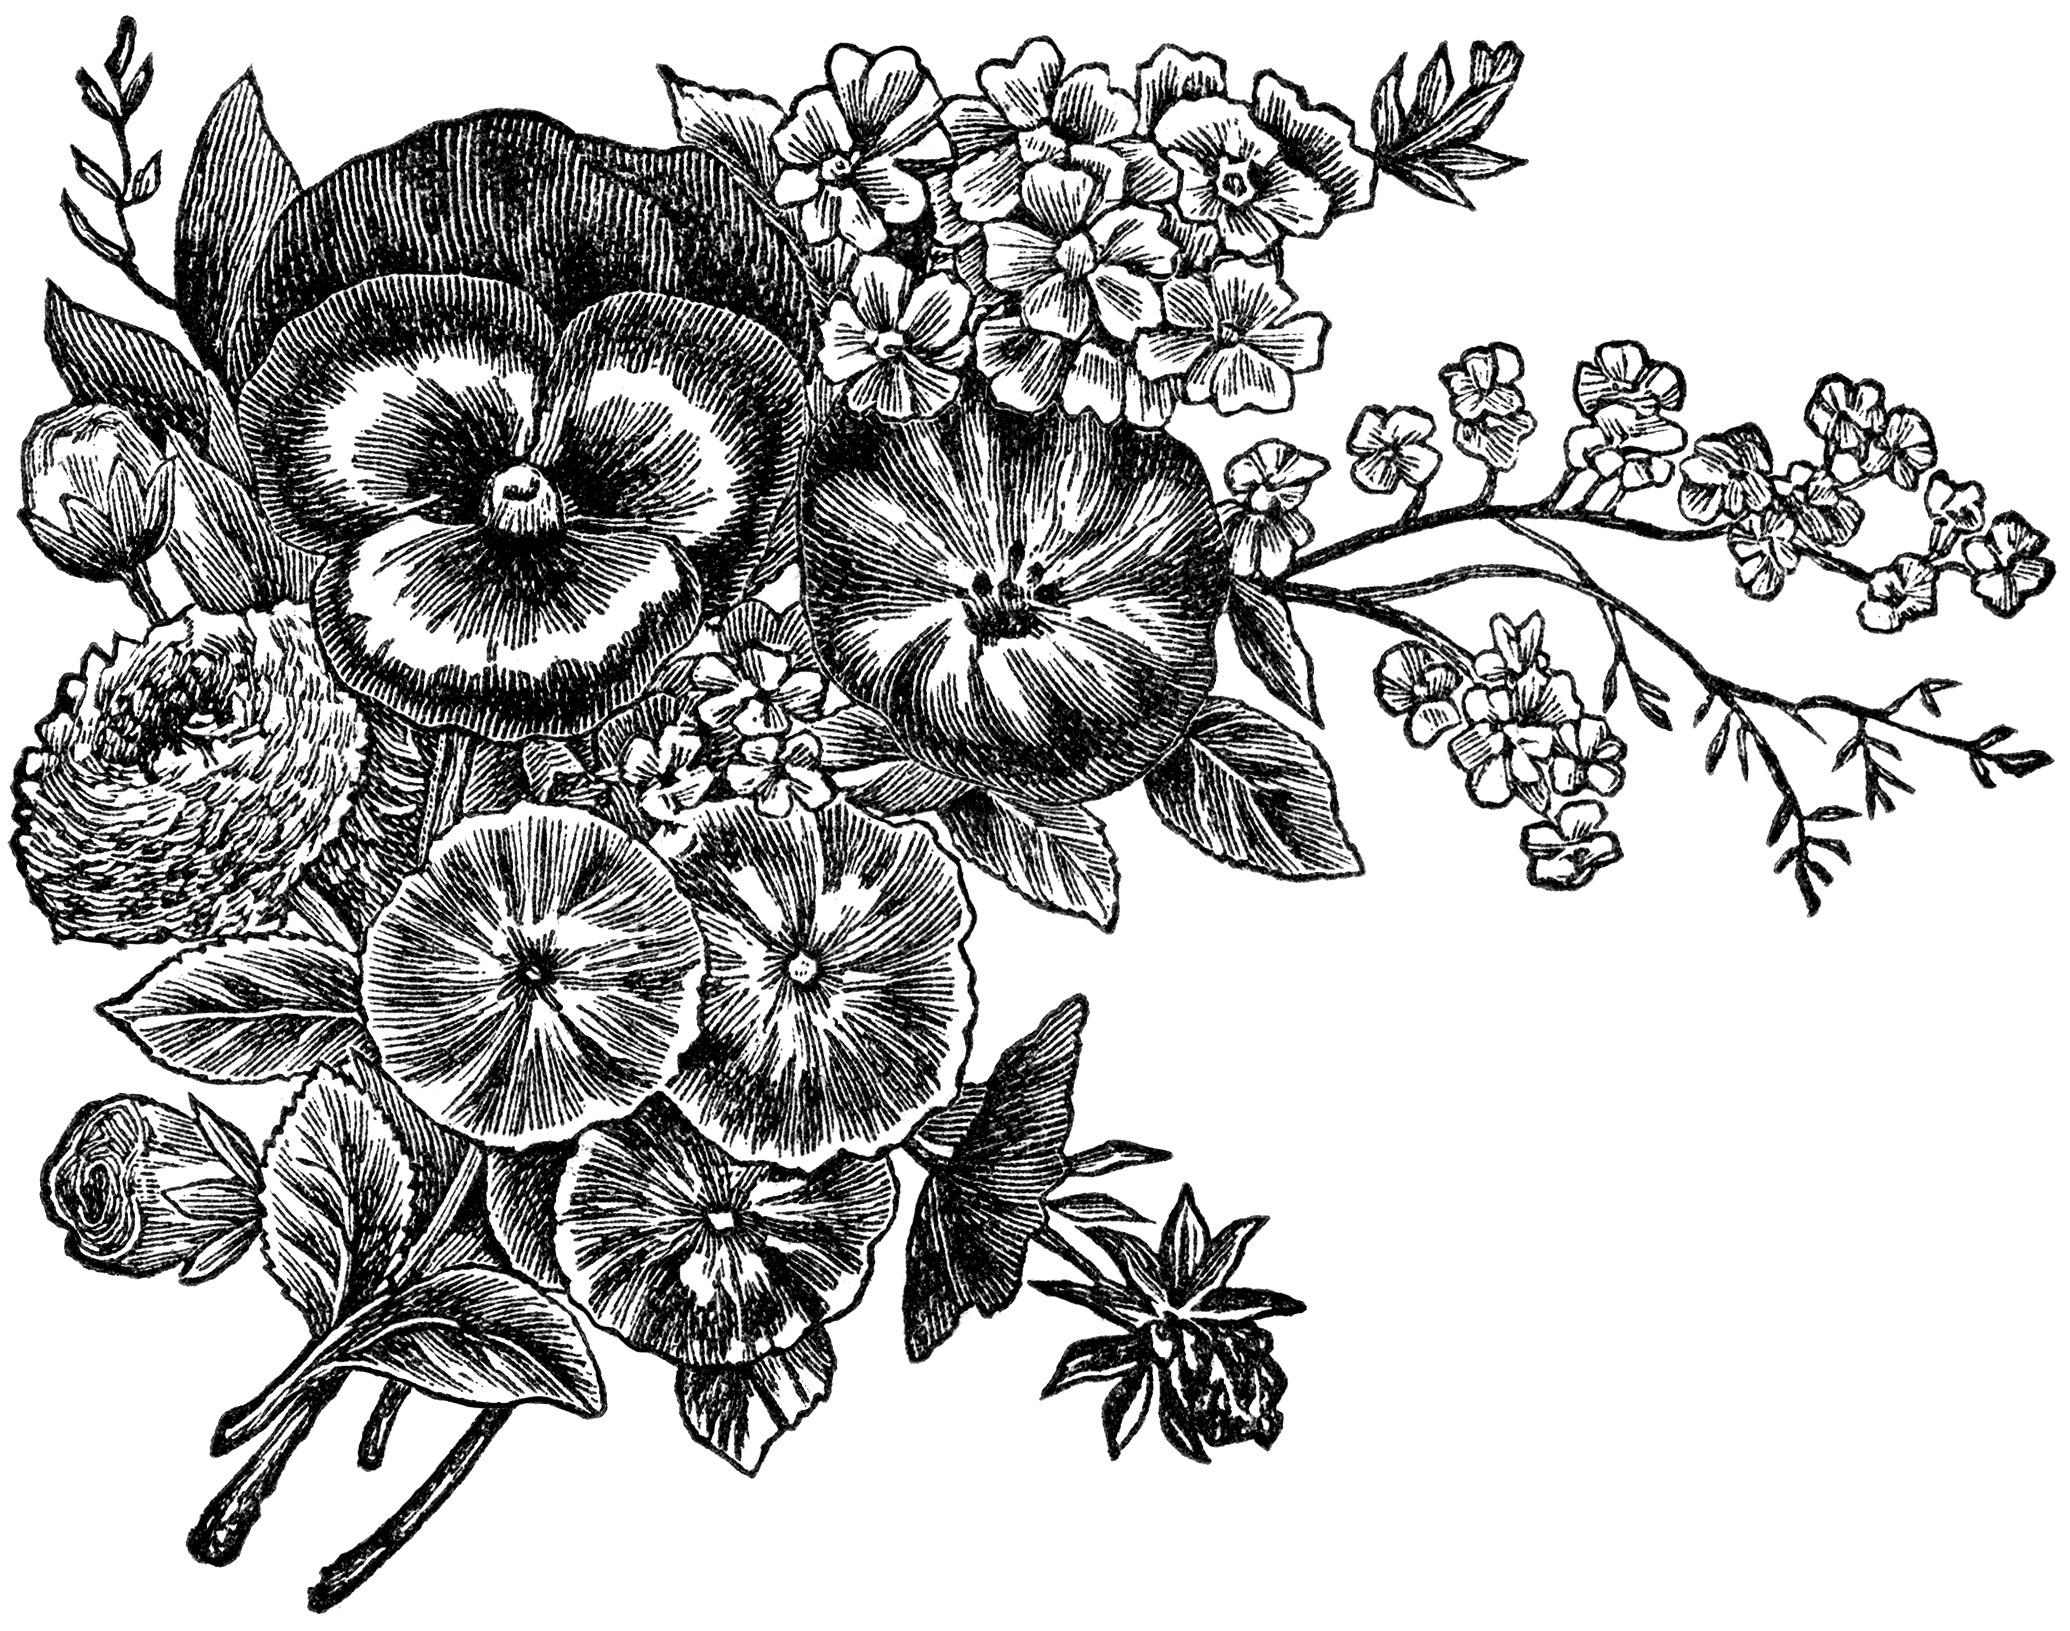 14 Floral Black Graphic Images